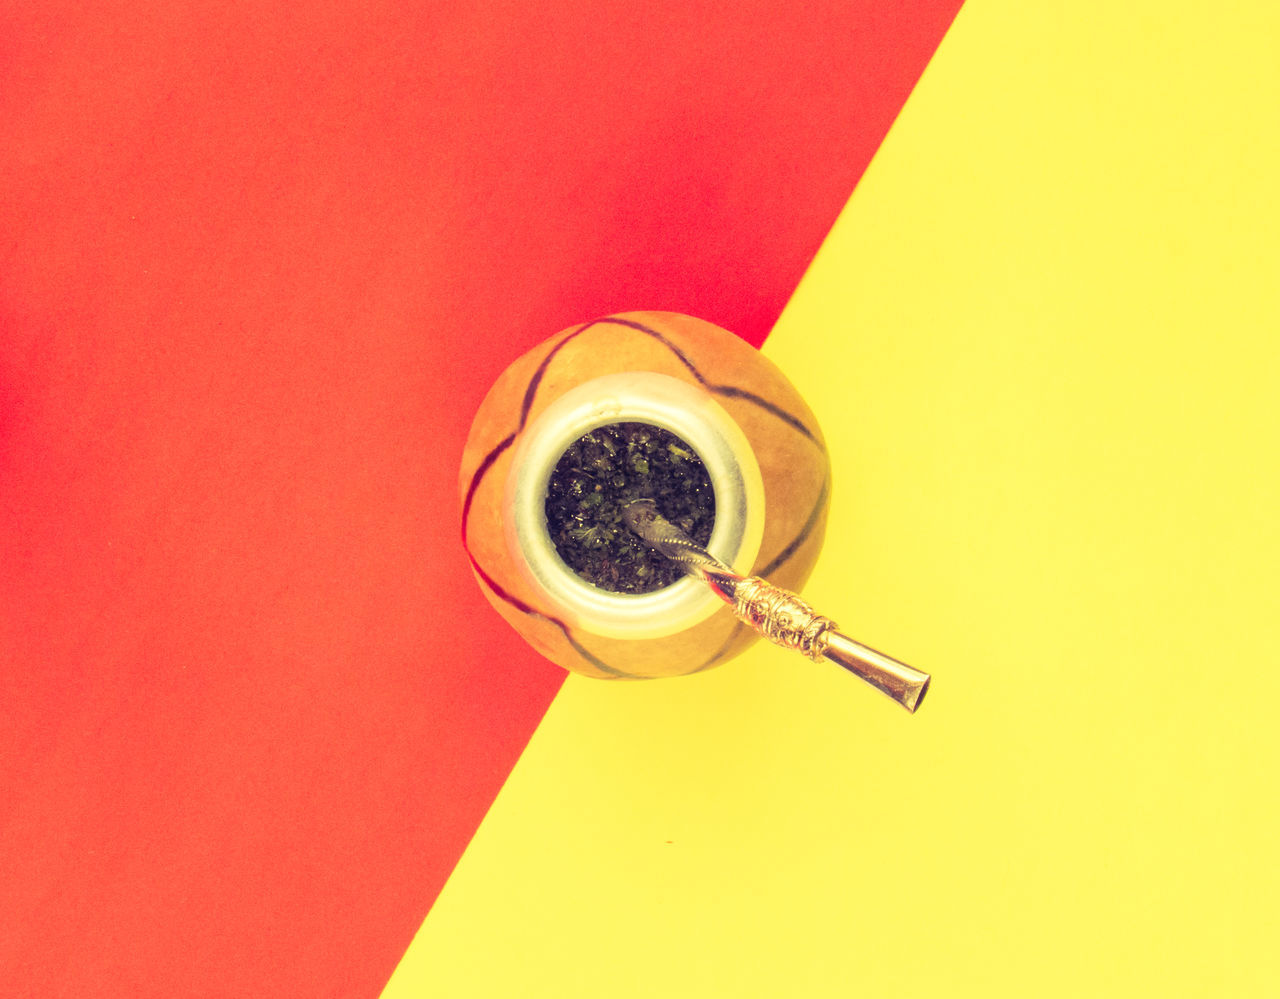 Yerba mate cup and straw of coffee on a colorful pastel background. Beverage Bombilla Circle Color Contrast Drink Food And Drink Freshness Herbal Hot Metal Minimalism Object Pattern Red Refreshment Still Life Straw Table Traditional Wood Yellow Yerba Mate